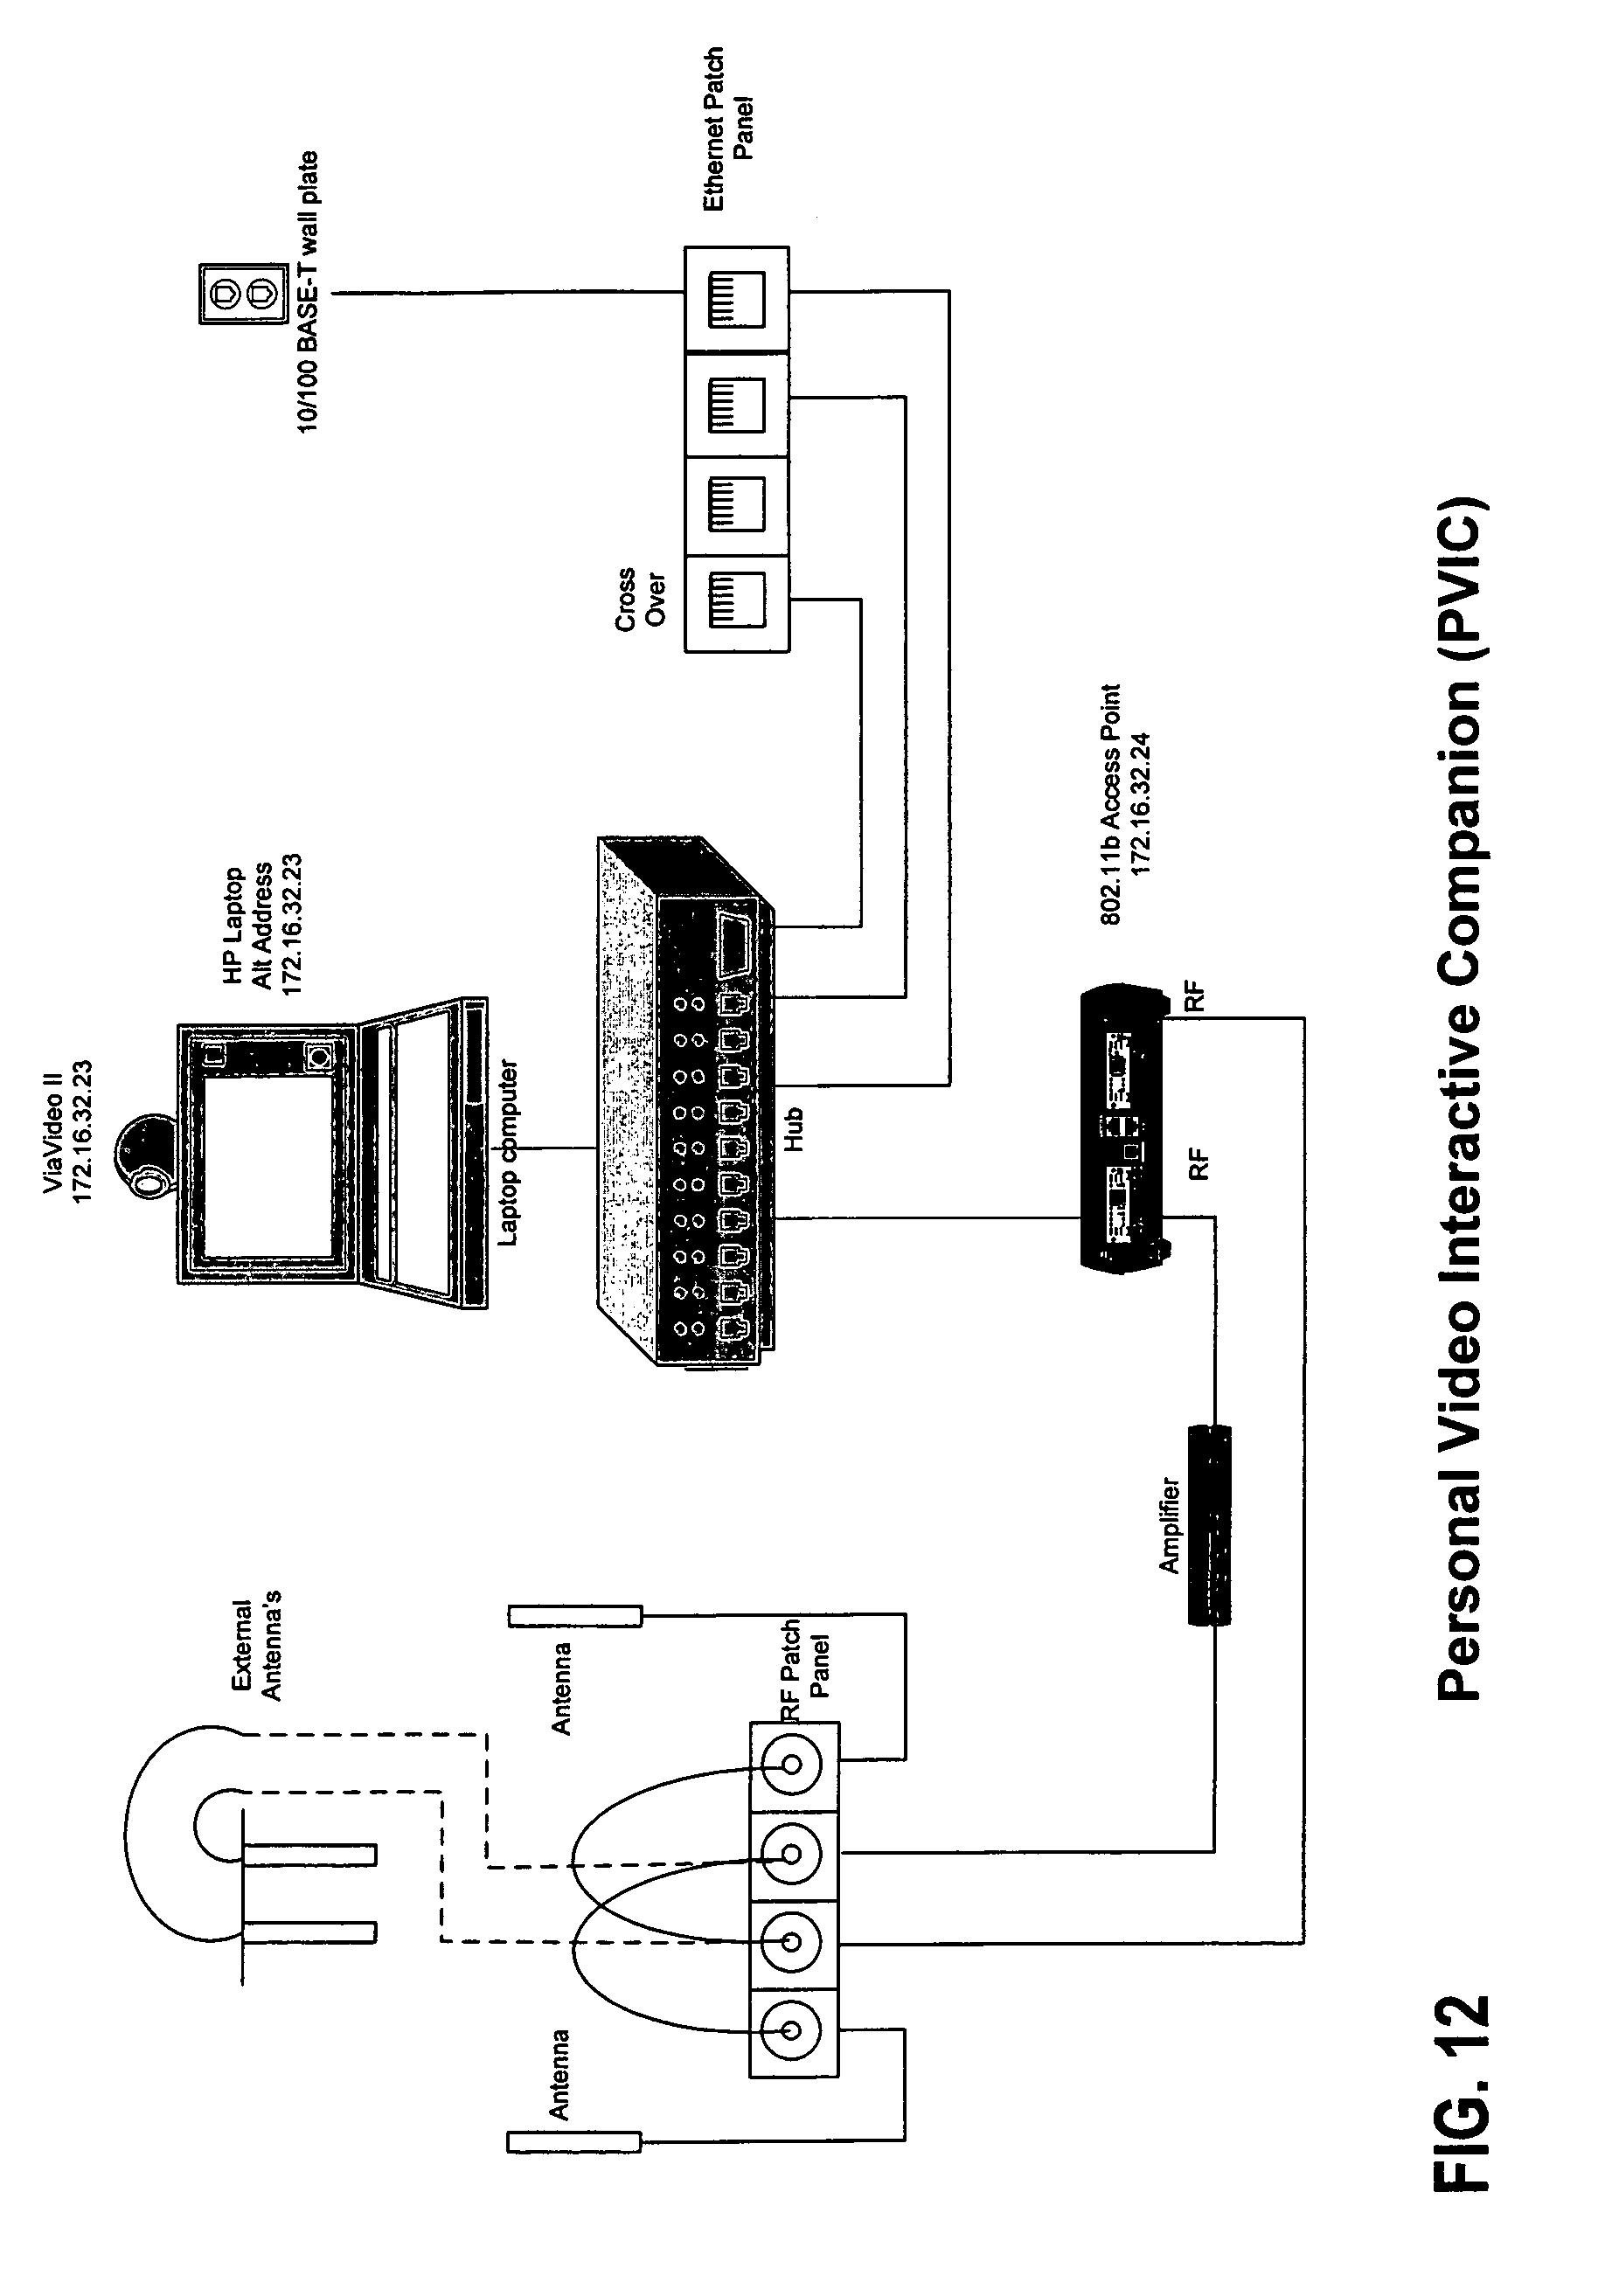 Isdn Block Diagram Trusted Wiring In Architecture Schematic Diagrams